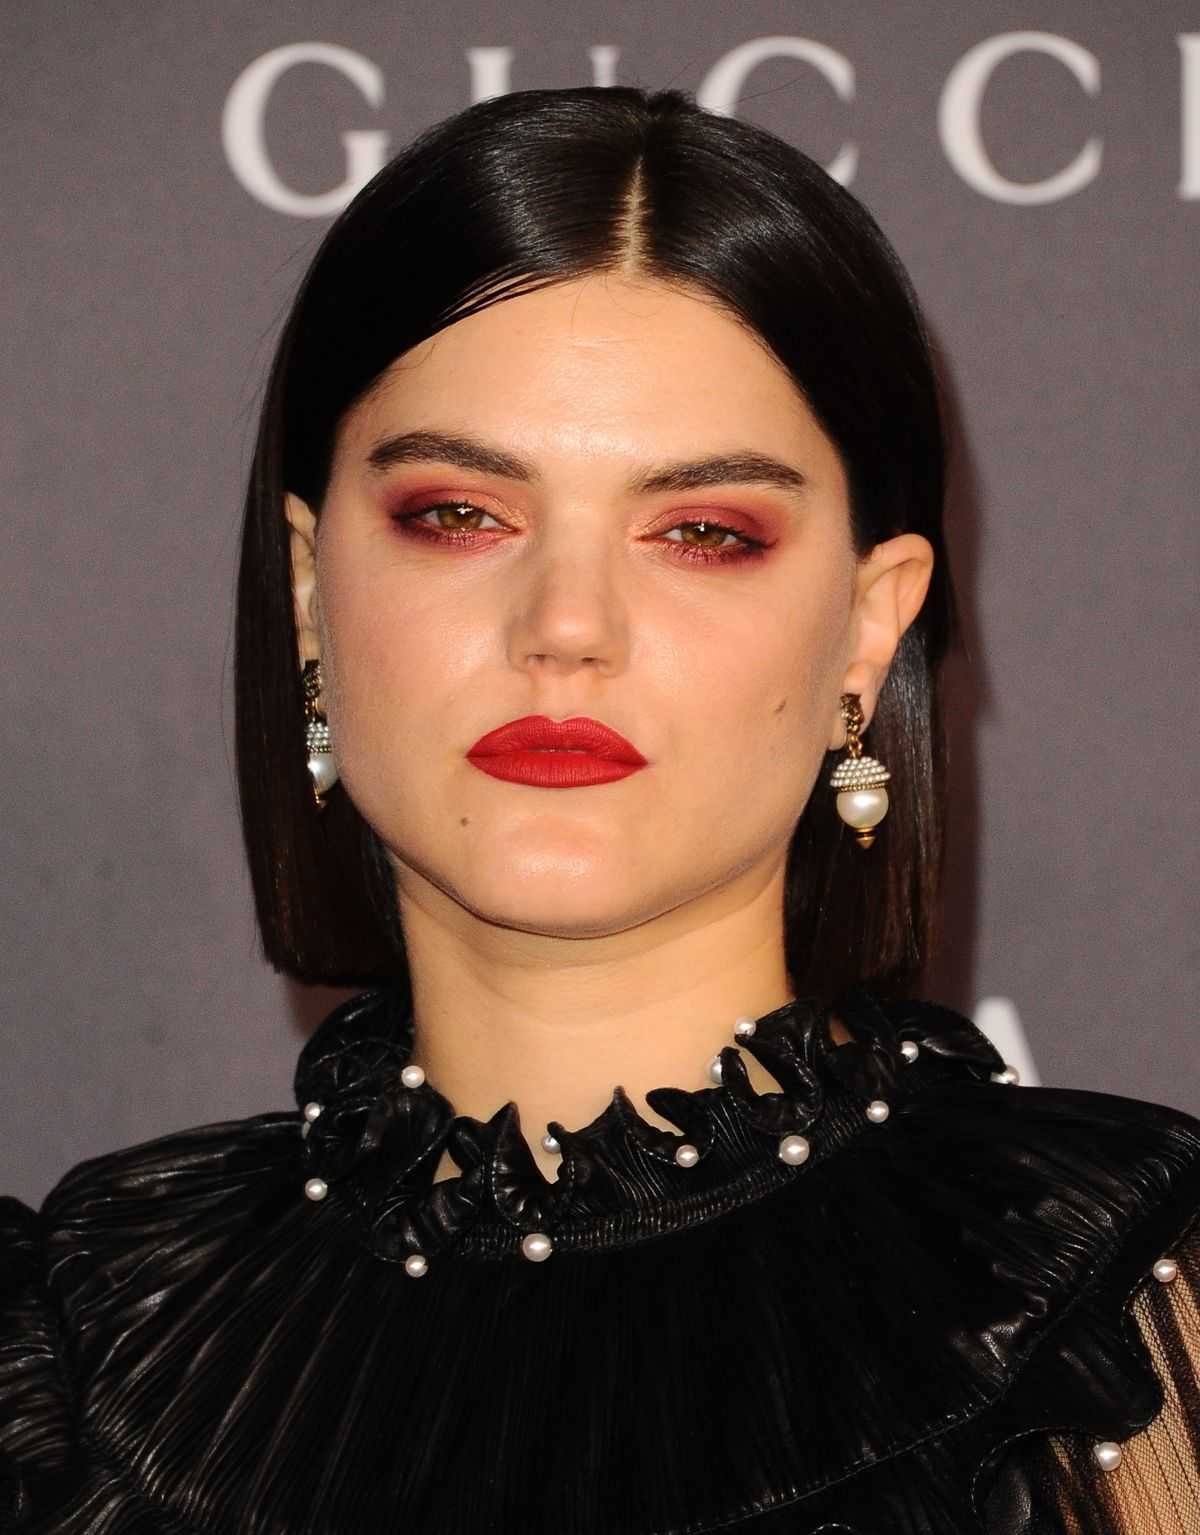 SOKO at 2017 LACMA Art + Film Gala in Los Angeles 11/04 ...